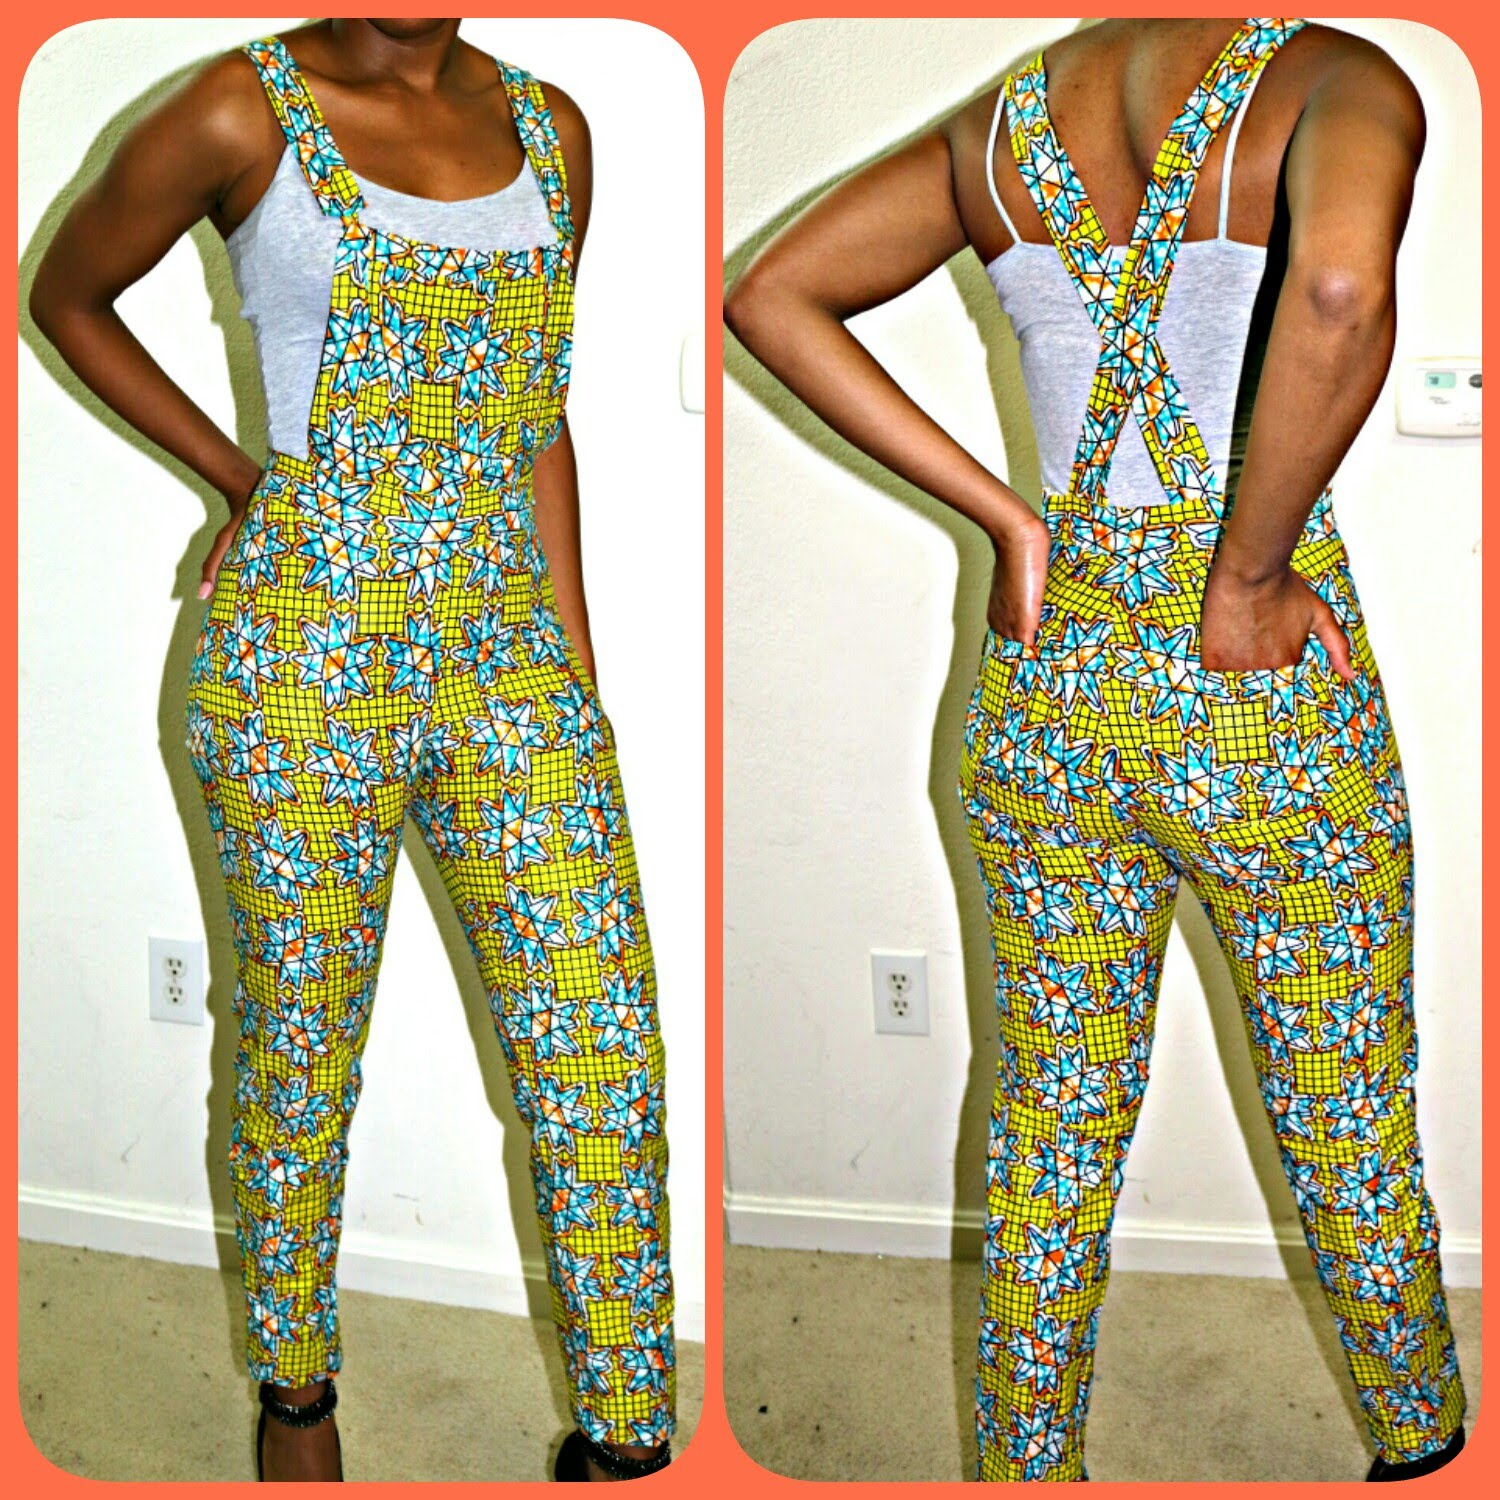 Fashion Trends Dress For The Modern Women In Africa 2